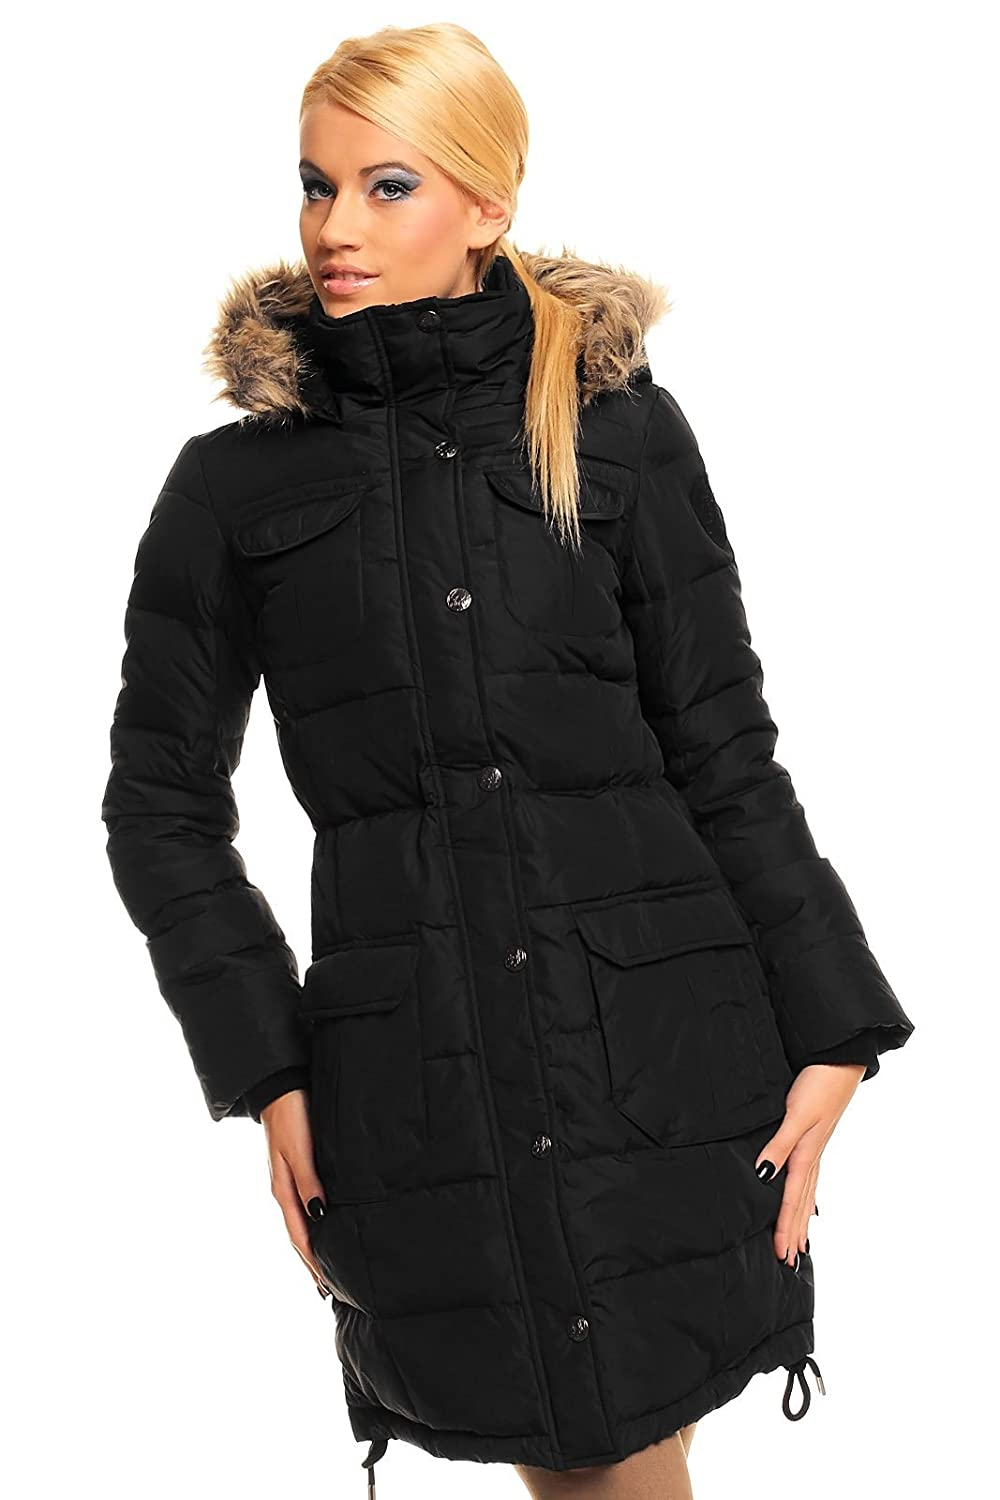 Fresh Made Daunen Mantel Steppmantel Wintermantel Steppjacke Fell Kapuze